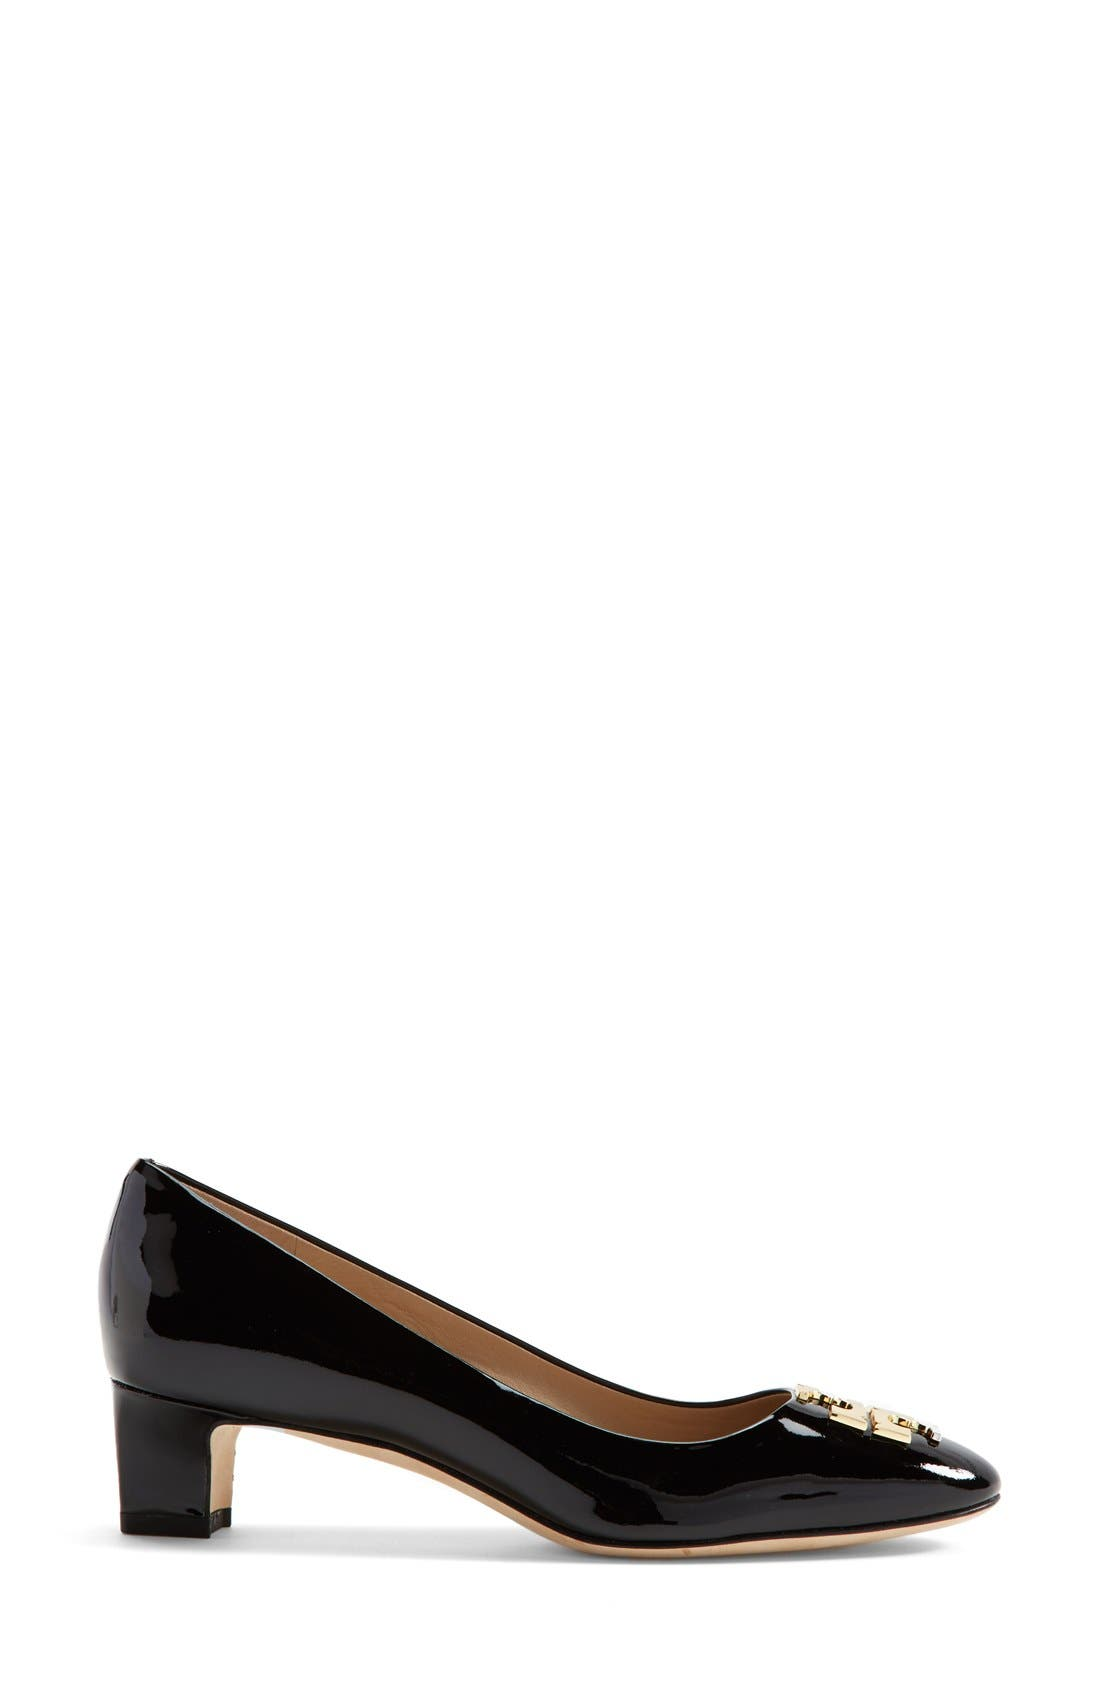 Alternate Image 4  - Tory Burch 'Raleigh' Patent Leather Pump (Women)